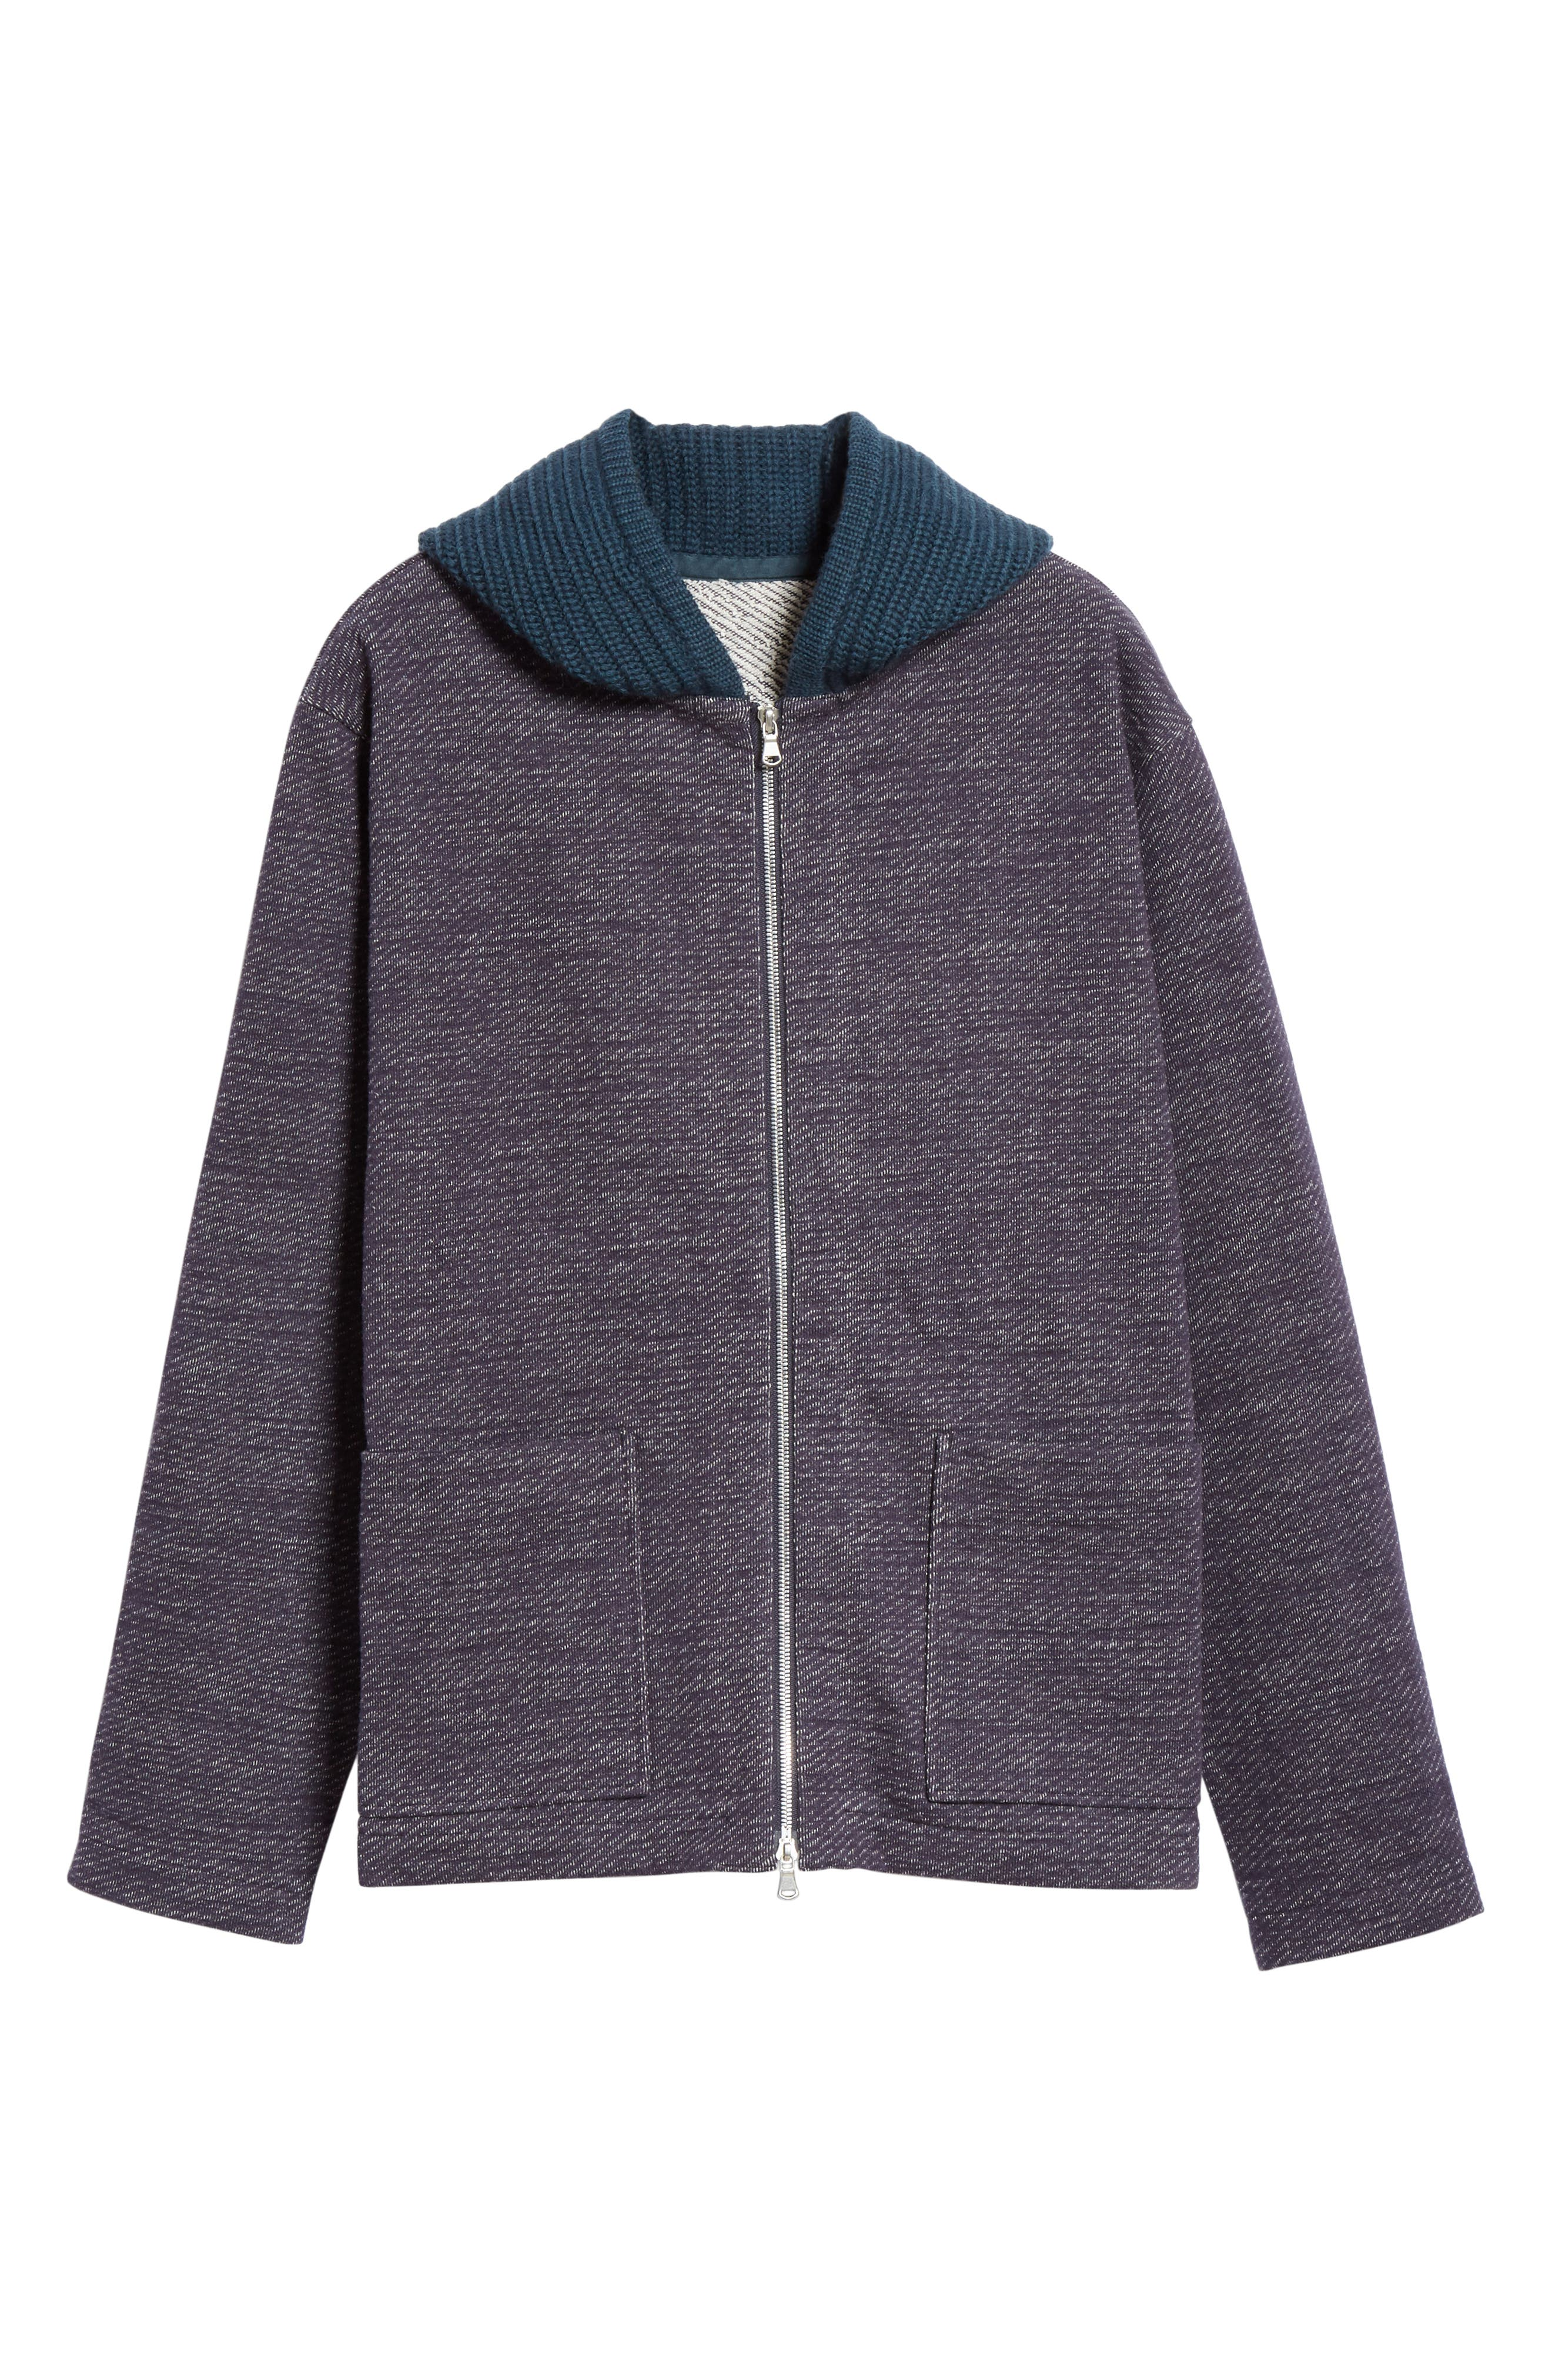 Hooded Cardigan,                             Alternate thumbnail 6, color,                             NAVY